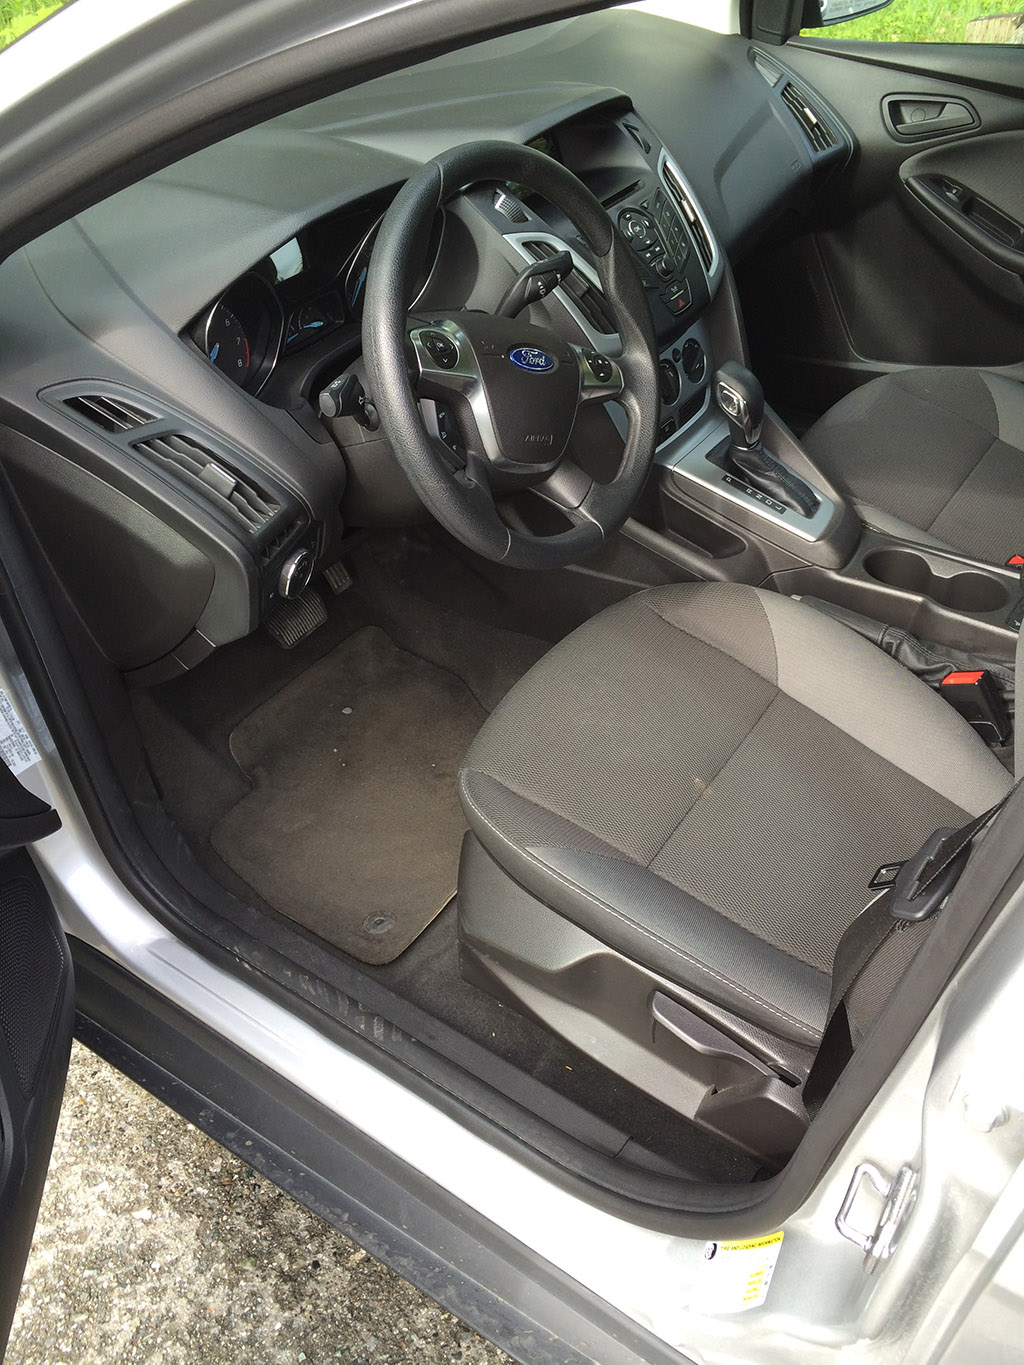 Drivers seat and dashboard of the 2013 ford focus